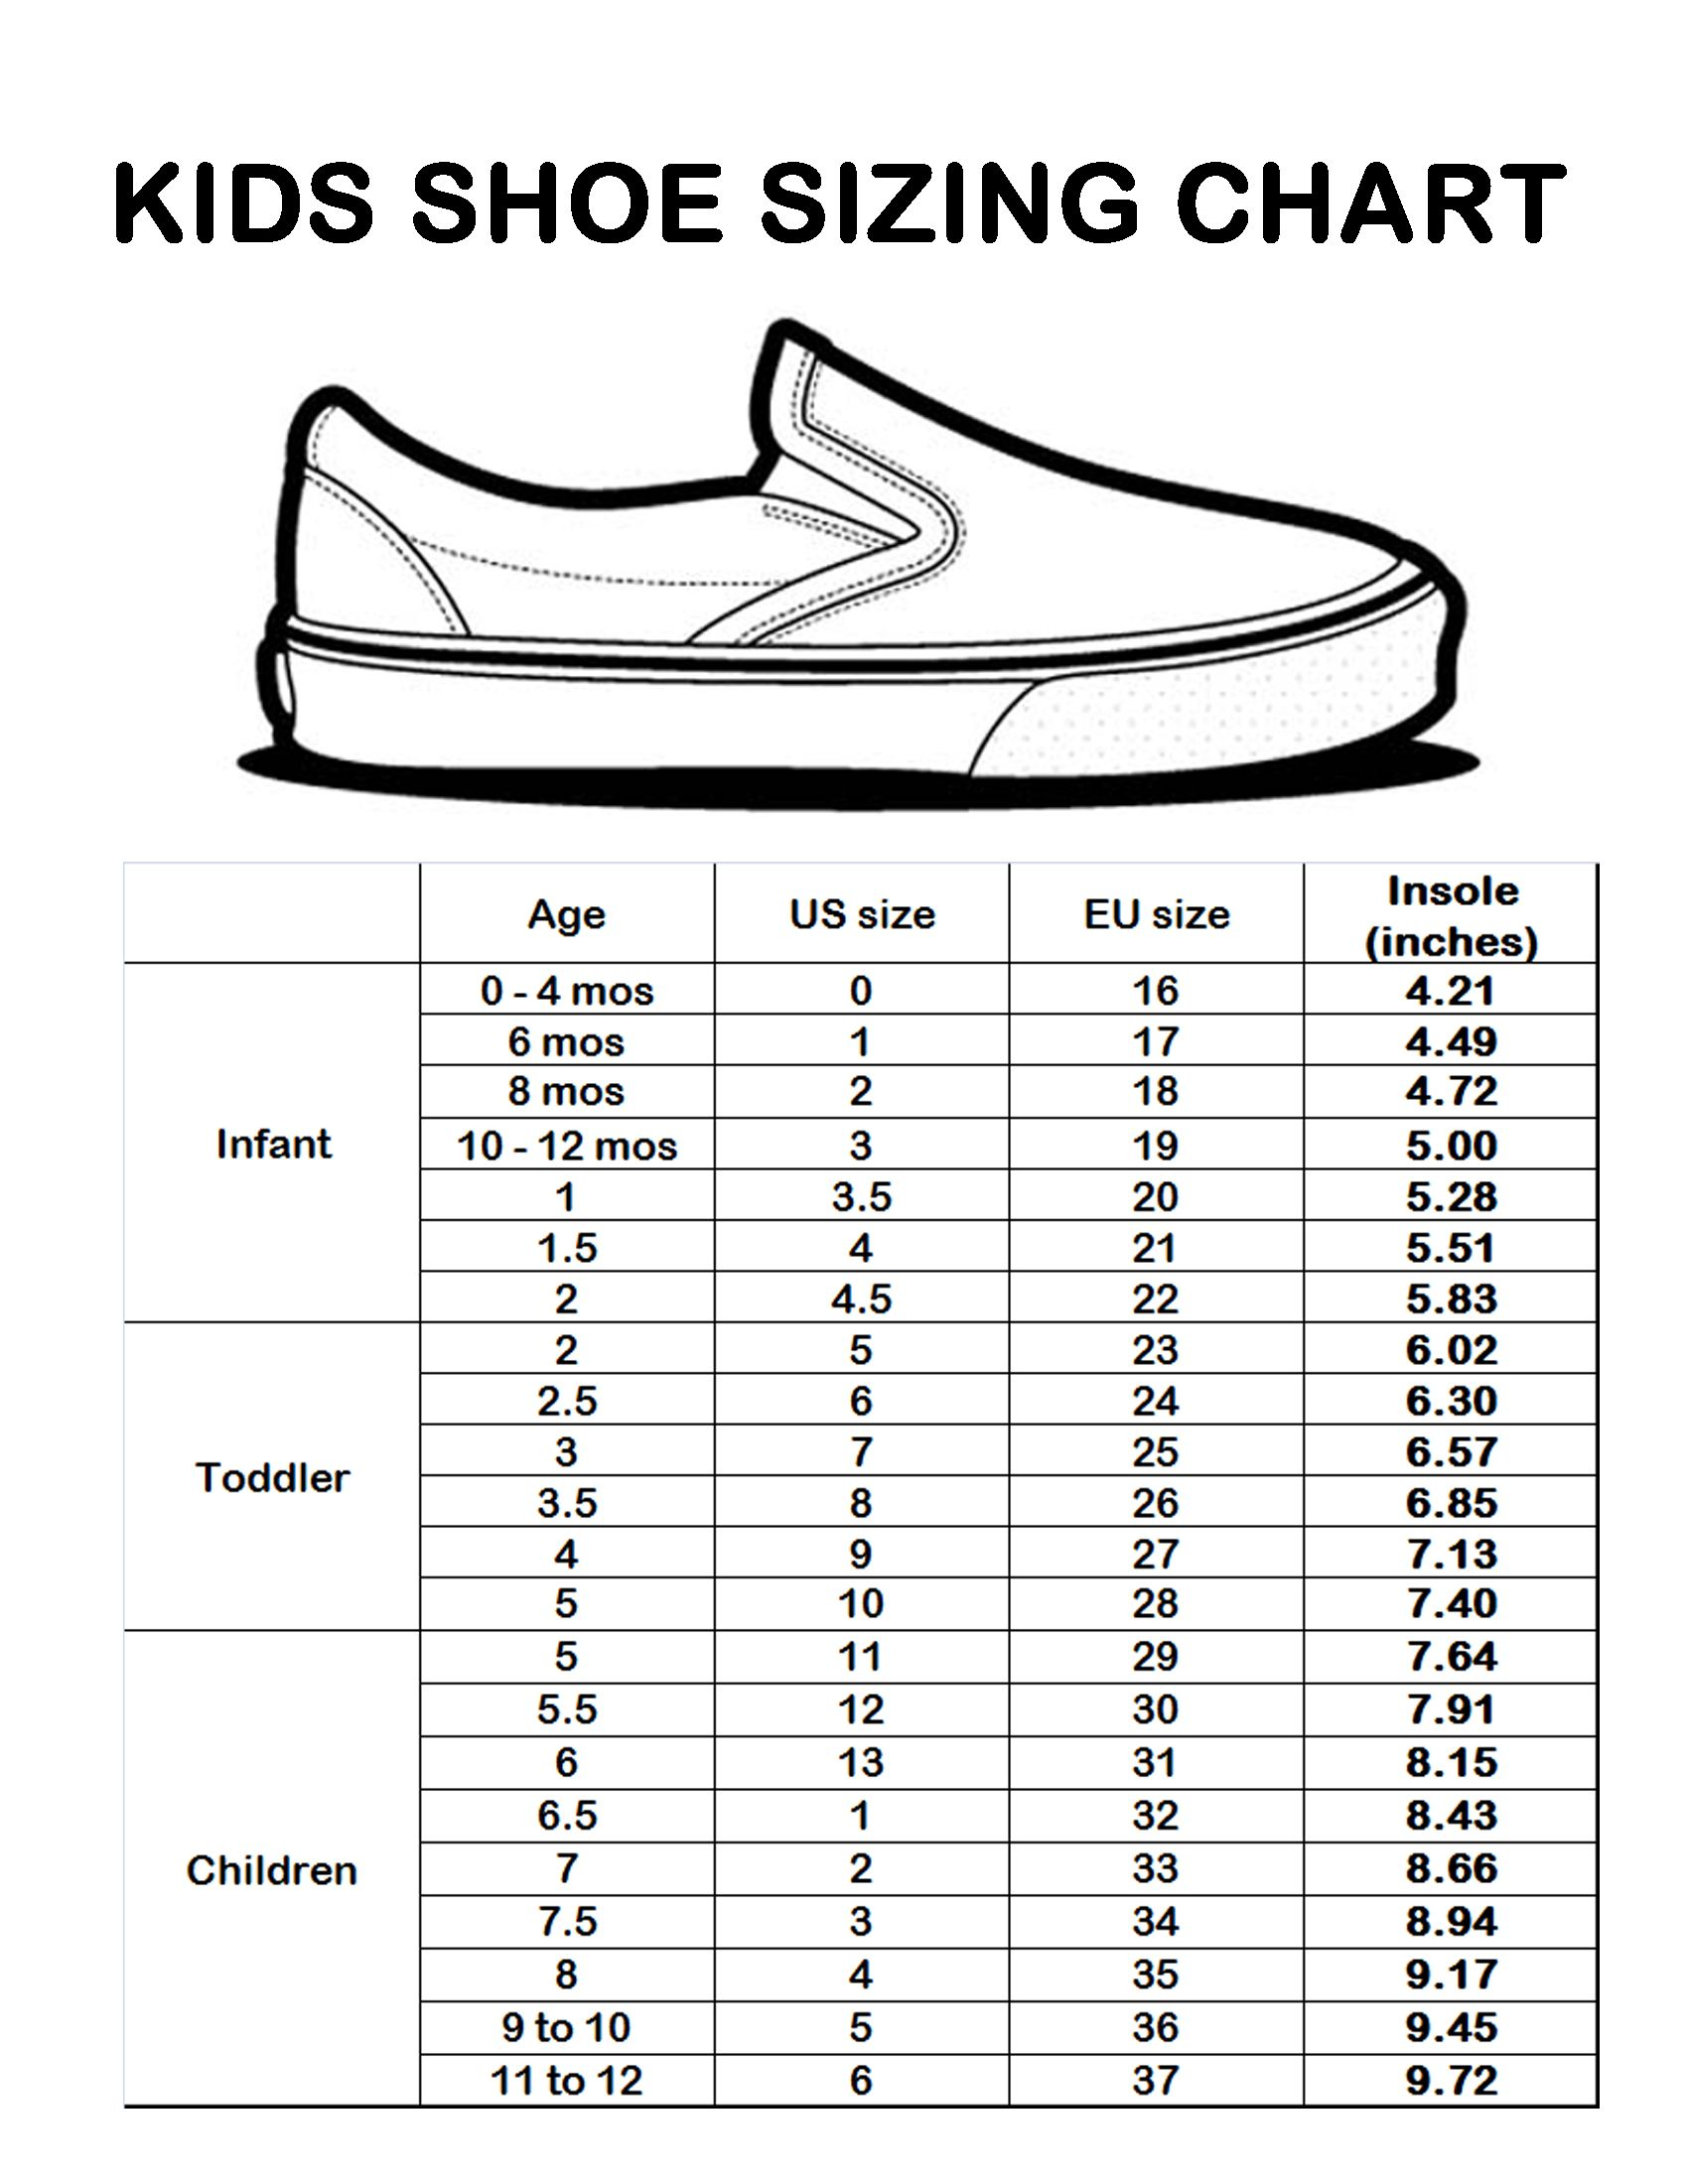 As a general guide, use the following chart of baby shoe sizes, which shows foot length matched to each approximate age. This chart works for most shoe styles your baby will wear at these ages, including sneakers, sporty sandals and boots.